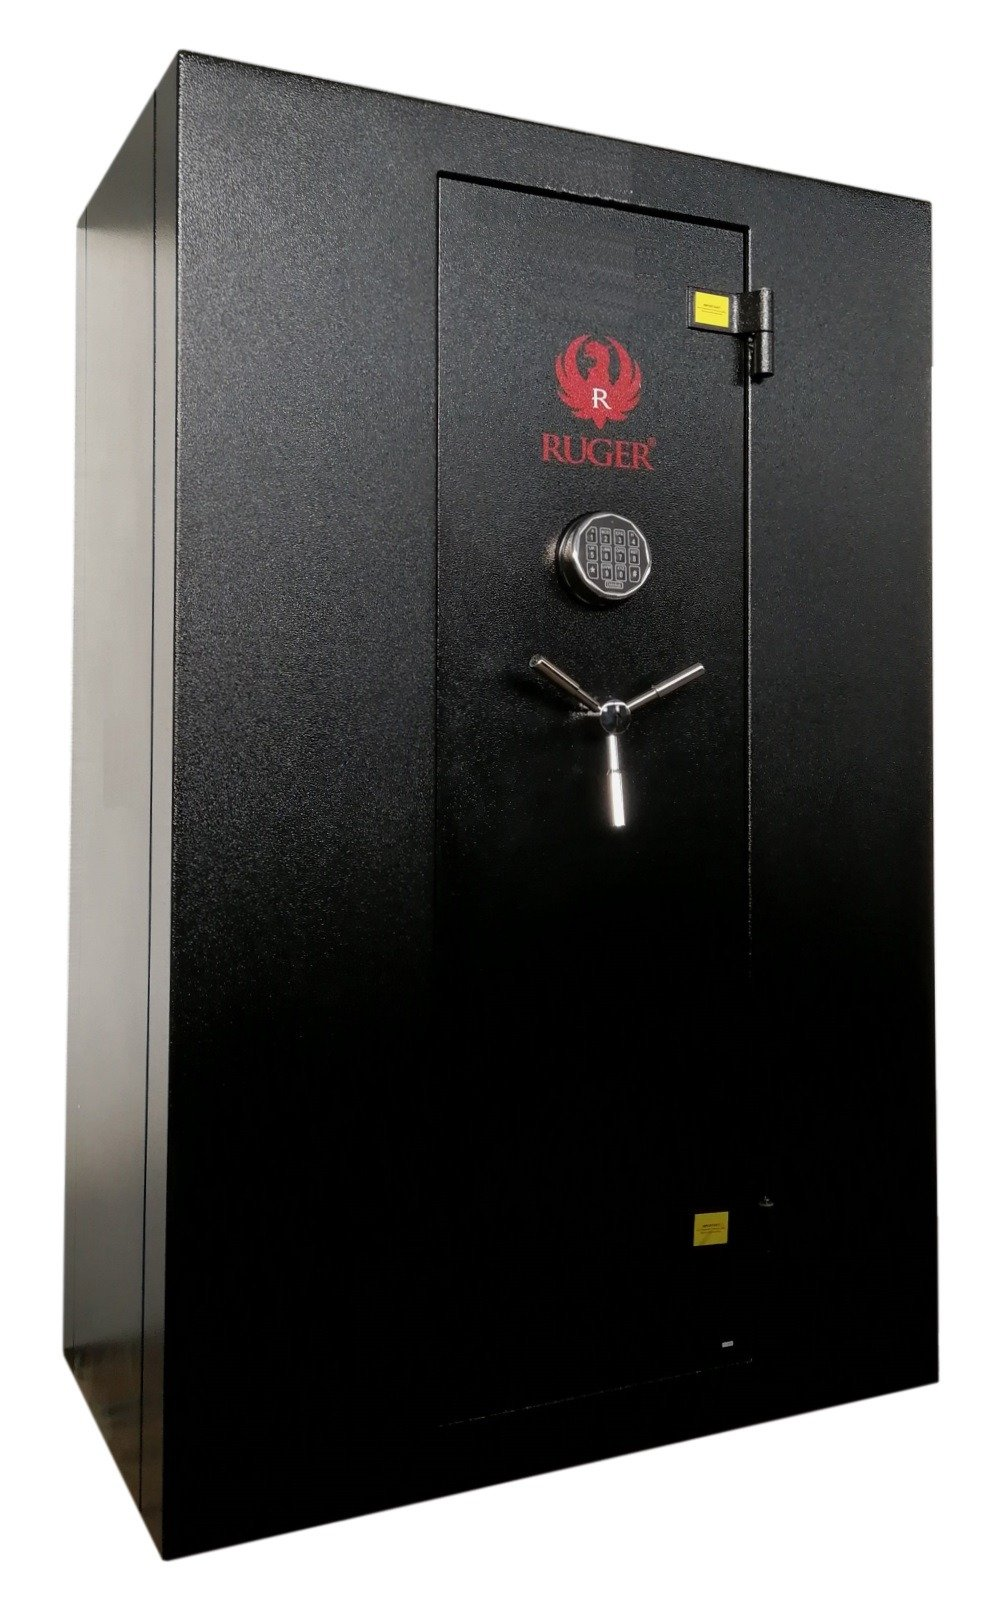 Closet Vault Gun Safe. Get Quotations · SnapSafe Ruger Tall Super Titan XL  Digital Modular Safe, Store Firearms And Valuables At Home